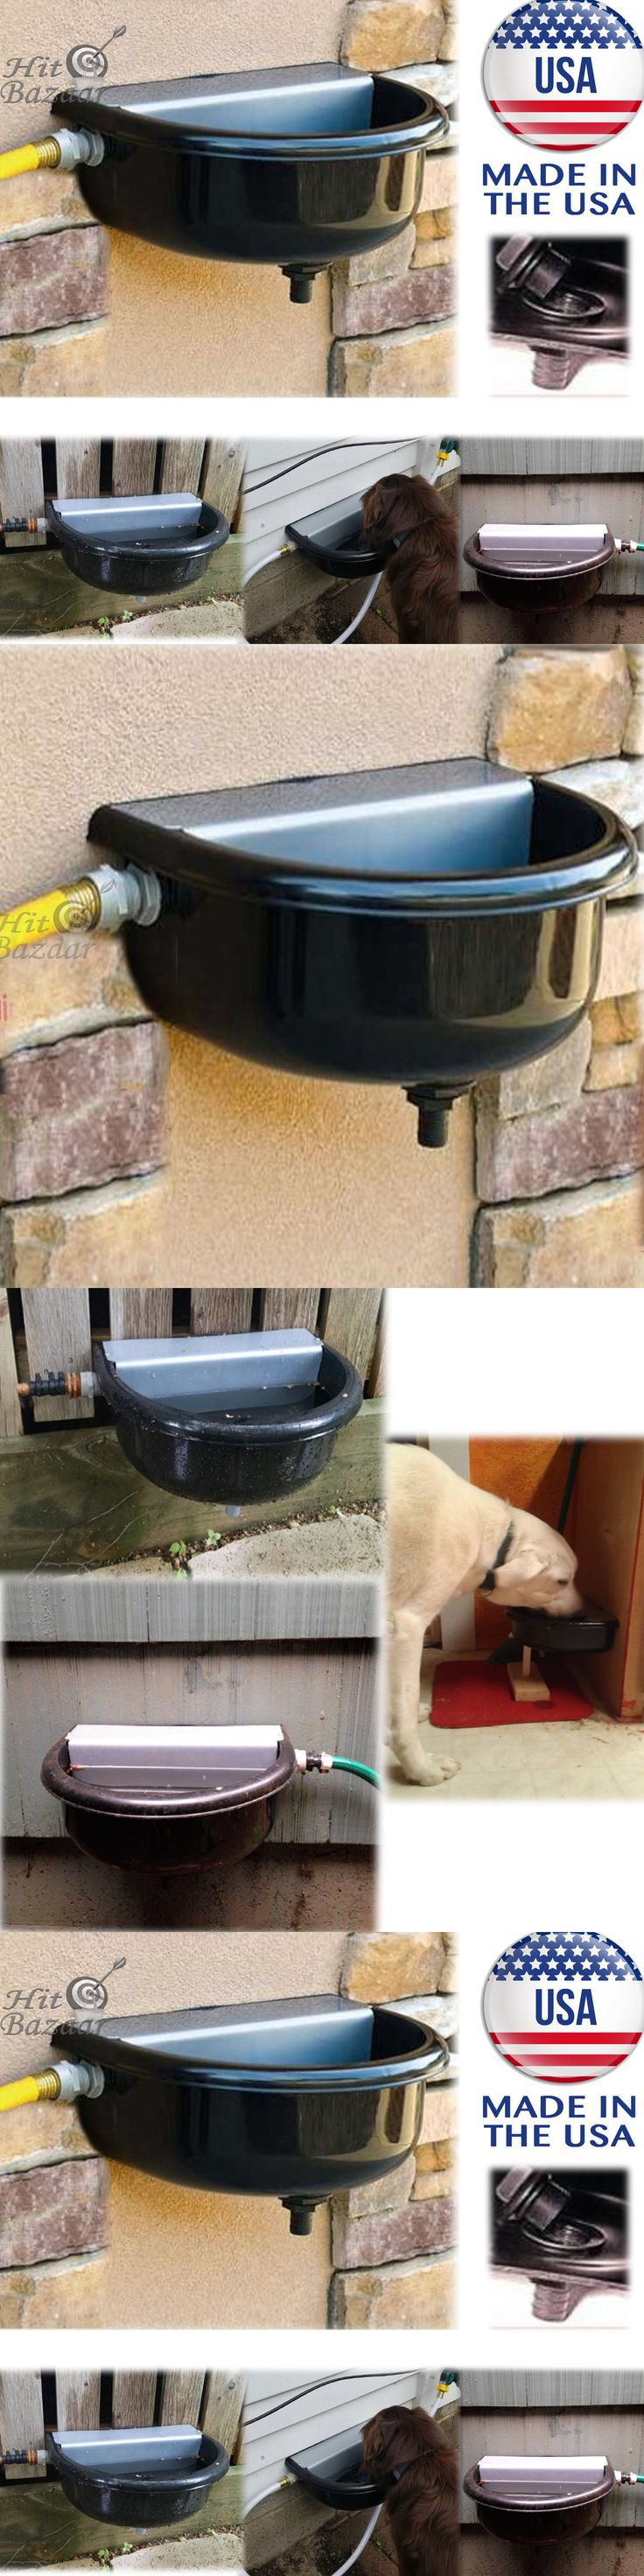 Dishes Feeders and Fountains 177789: Automatic Pet Waterer Fountain Water Dispenser Dog Horse Drink Outdoor Animal -> BUY IT NOW ONLY: $55.33 on eBay!